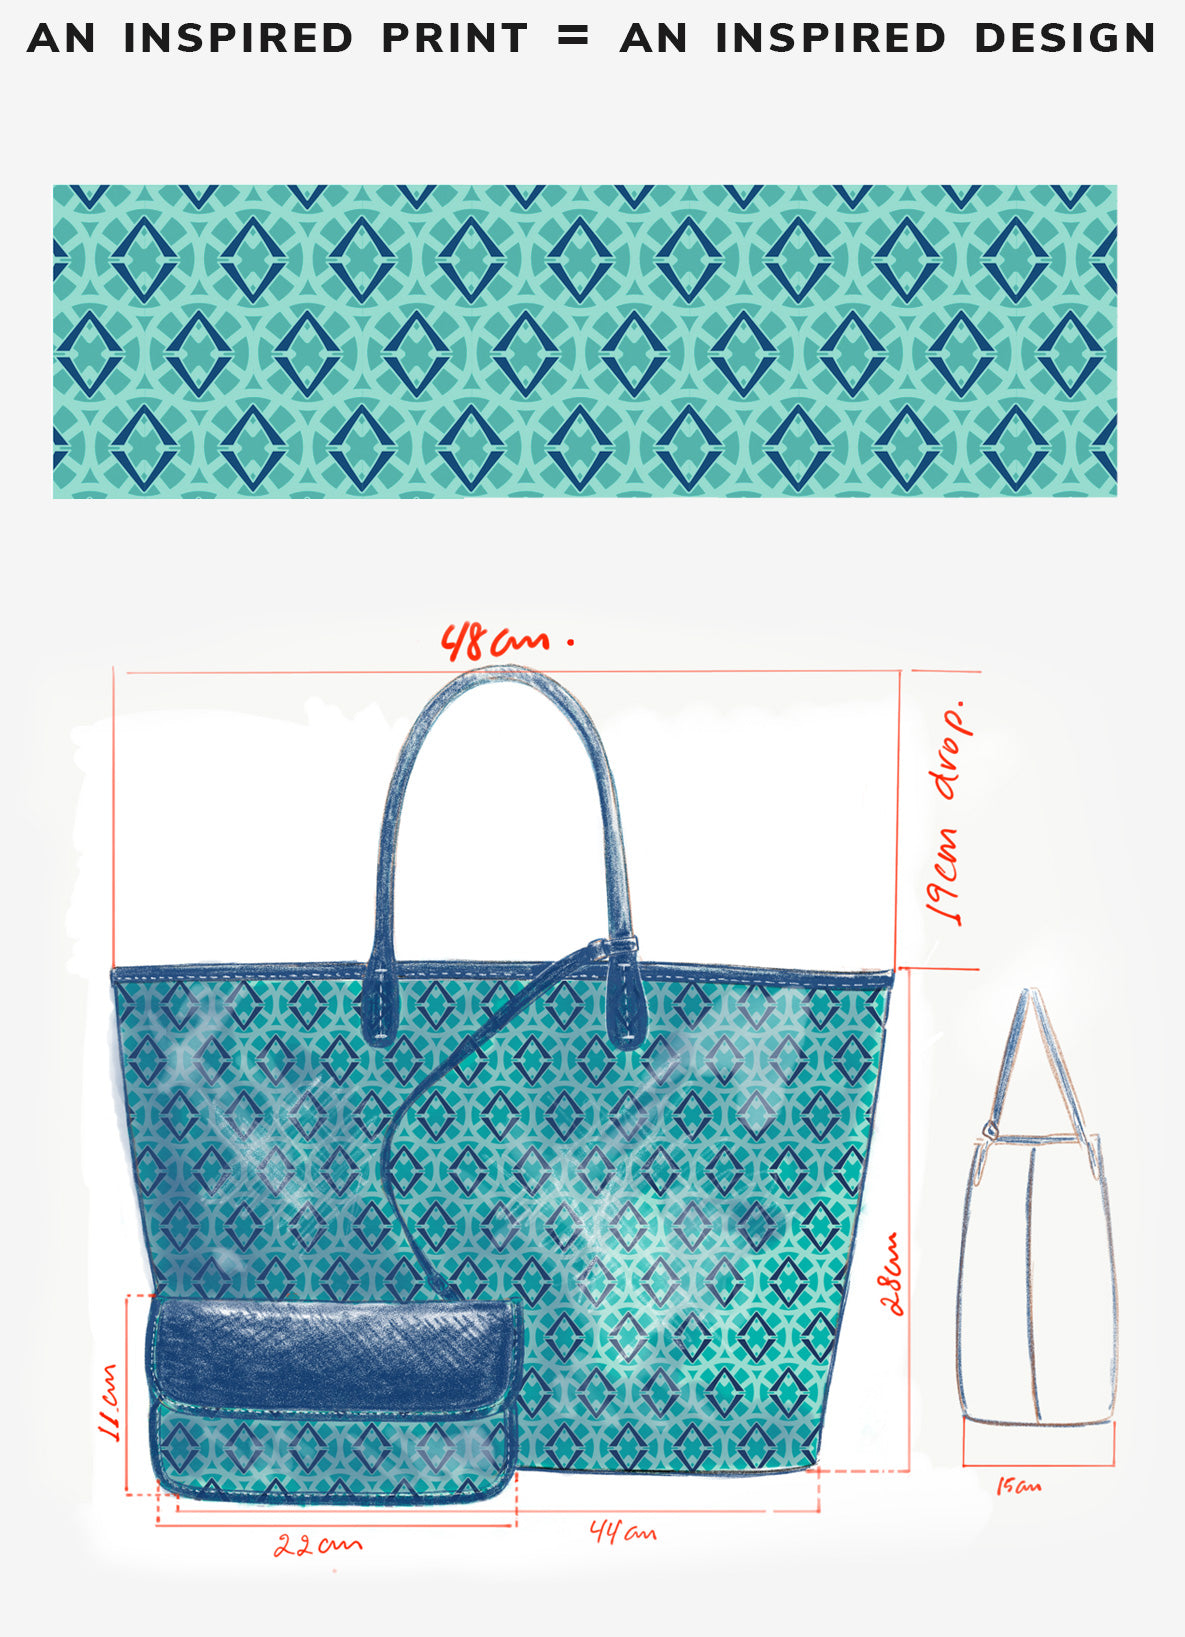 the signature lovve print is shown by itself and then as an illustrated bag design